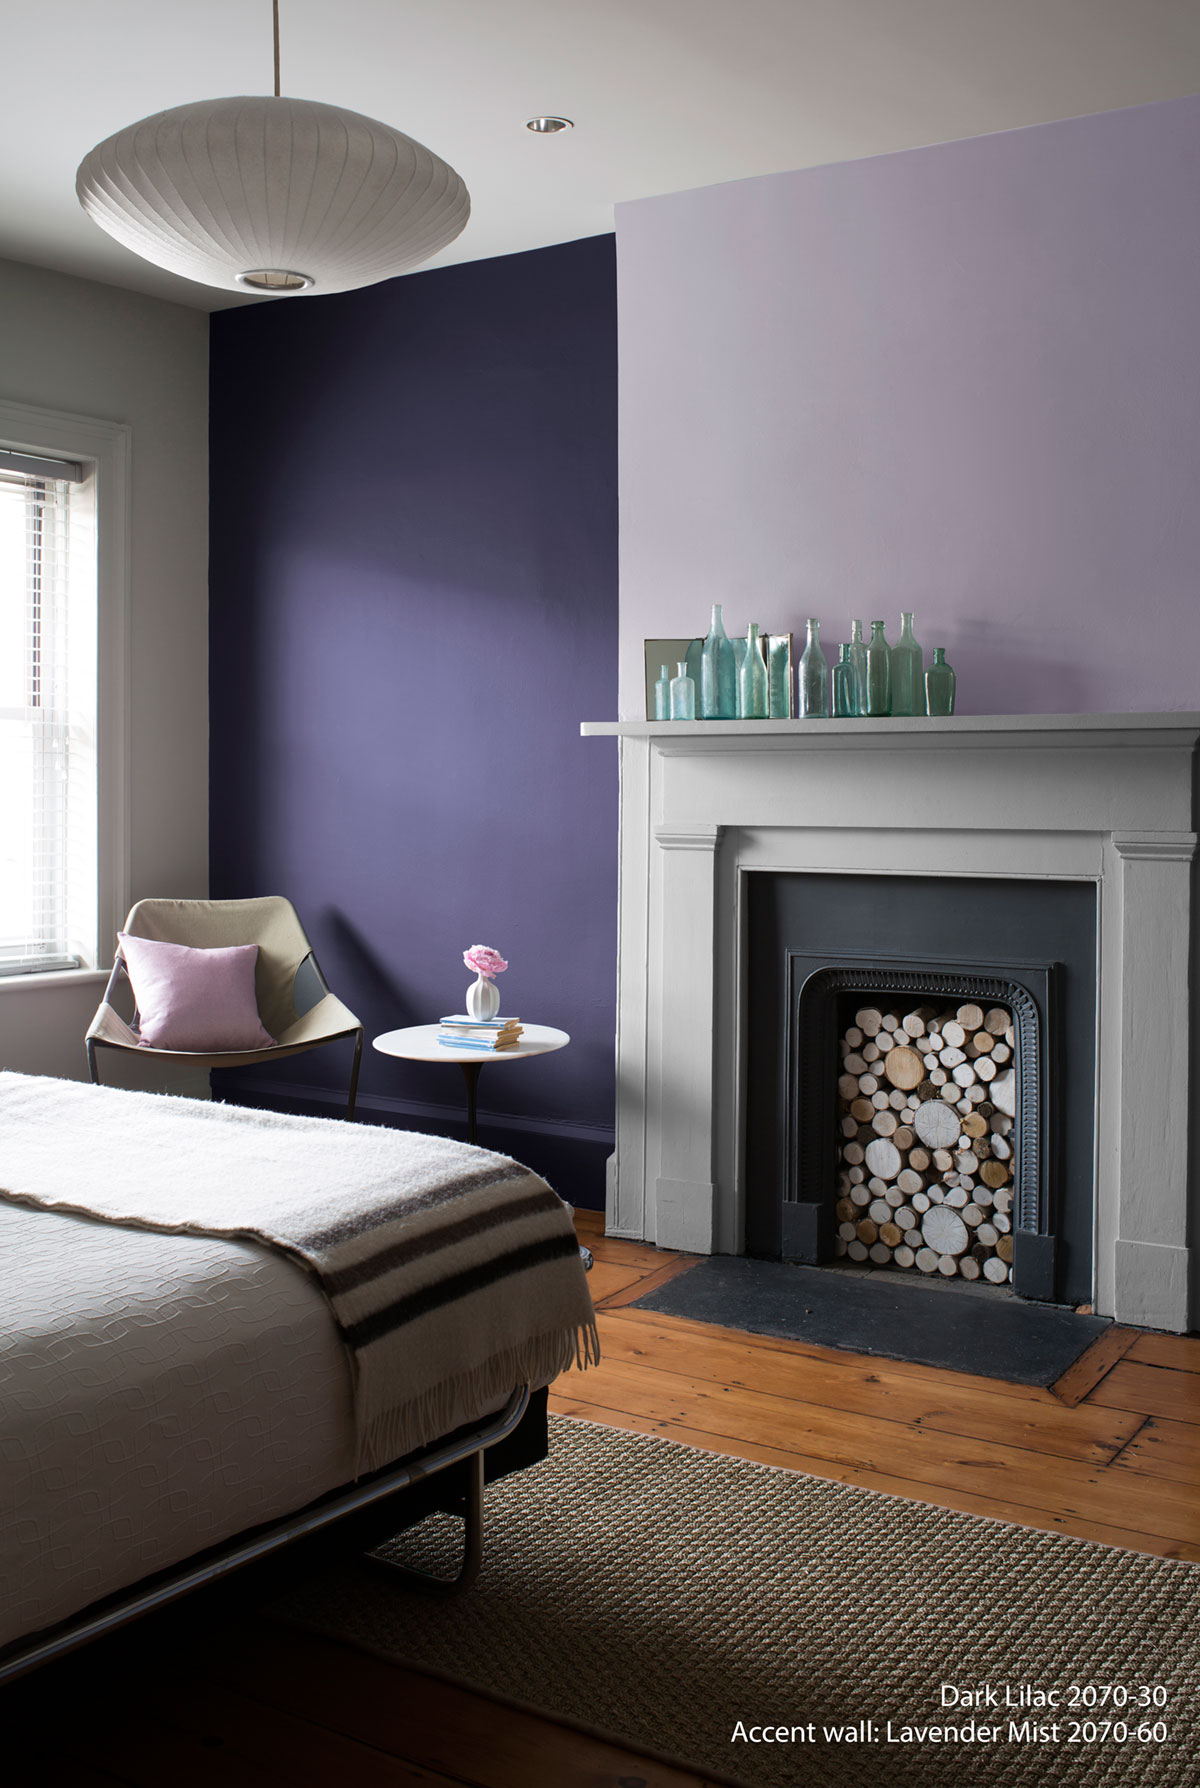 bedroom_darklilac2070_30_lavendarmist2070-60-2.jpg